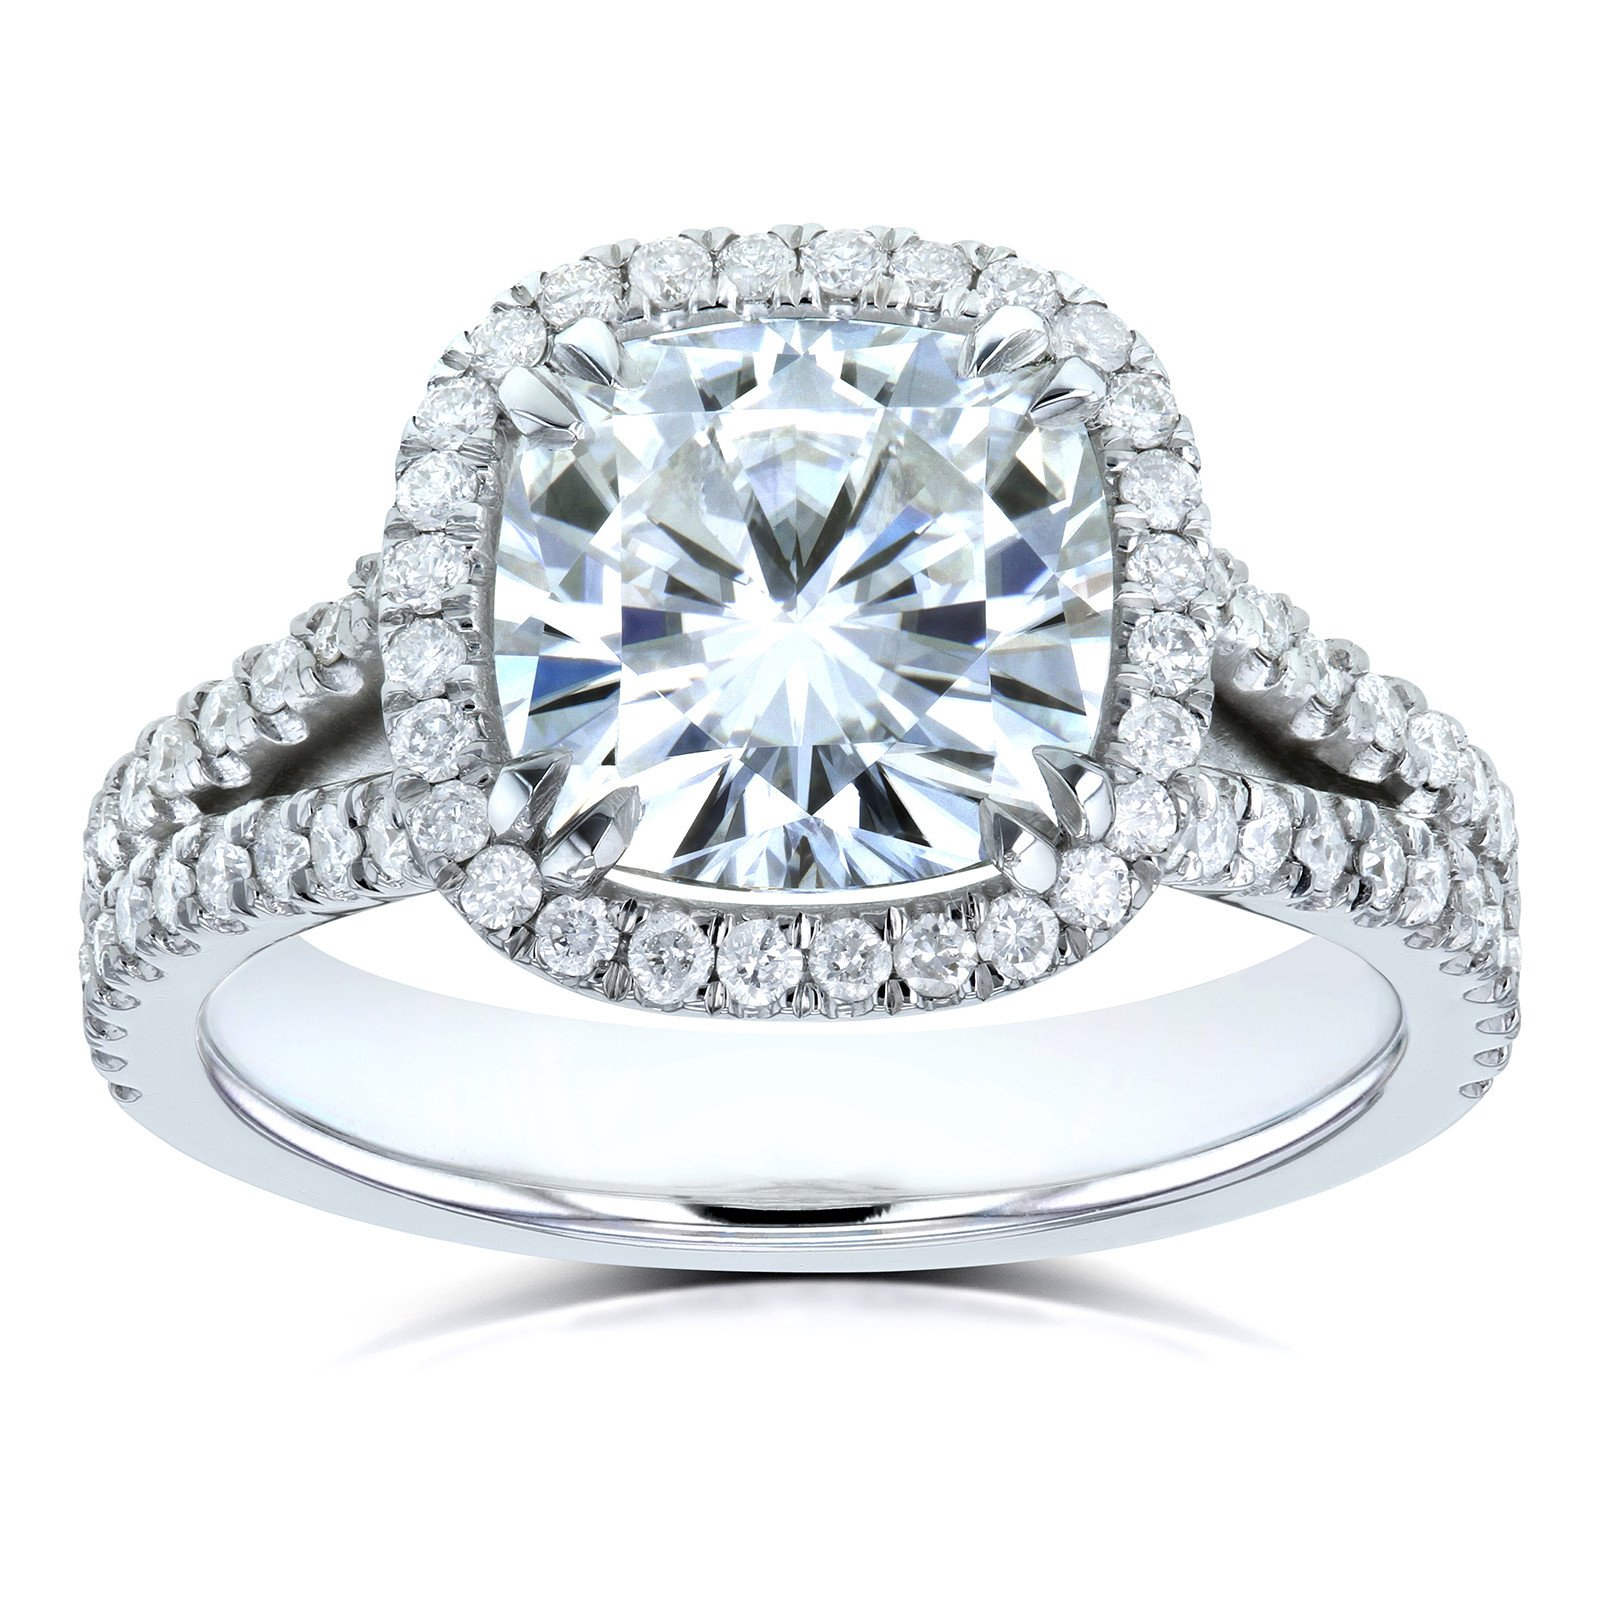 Cushion D-E-F Moissanite with Diamond Split Shank Halo Engagement Ring 3 1/3 CTW 14k White Gold, 7